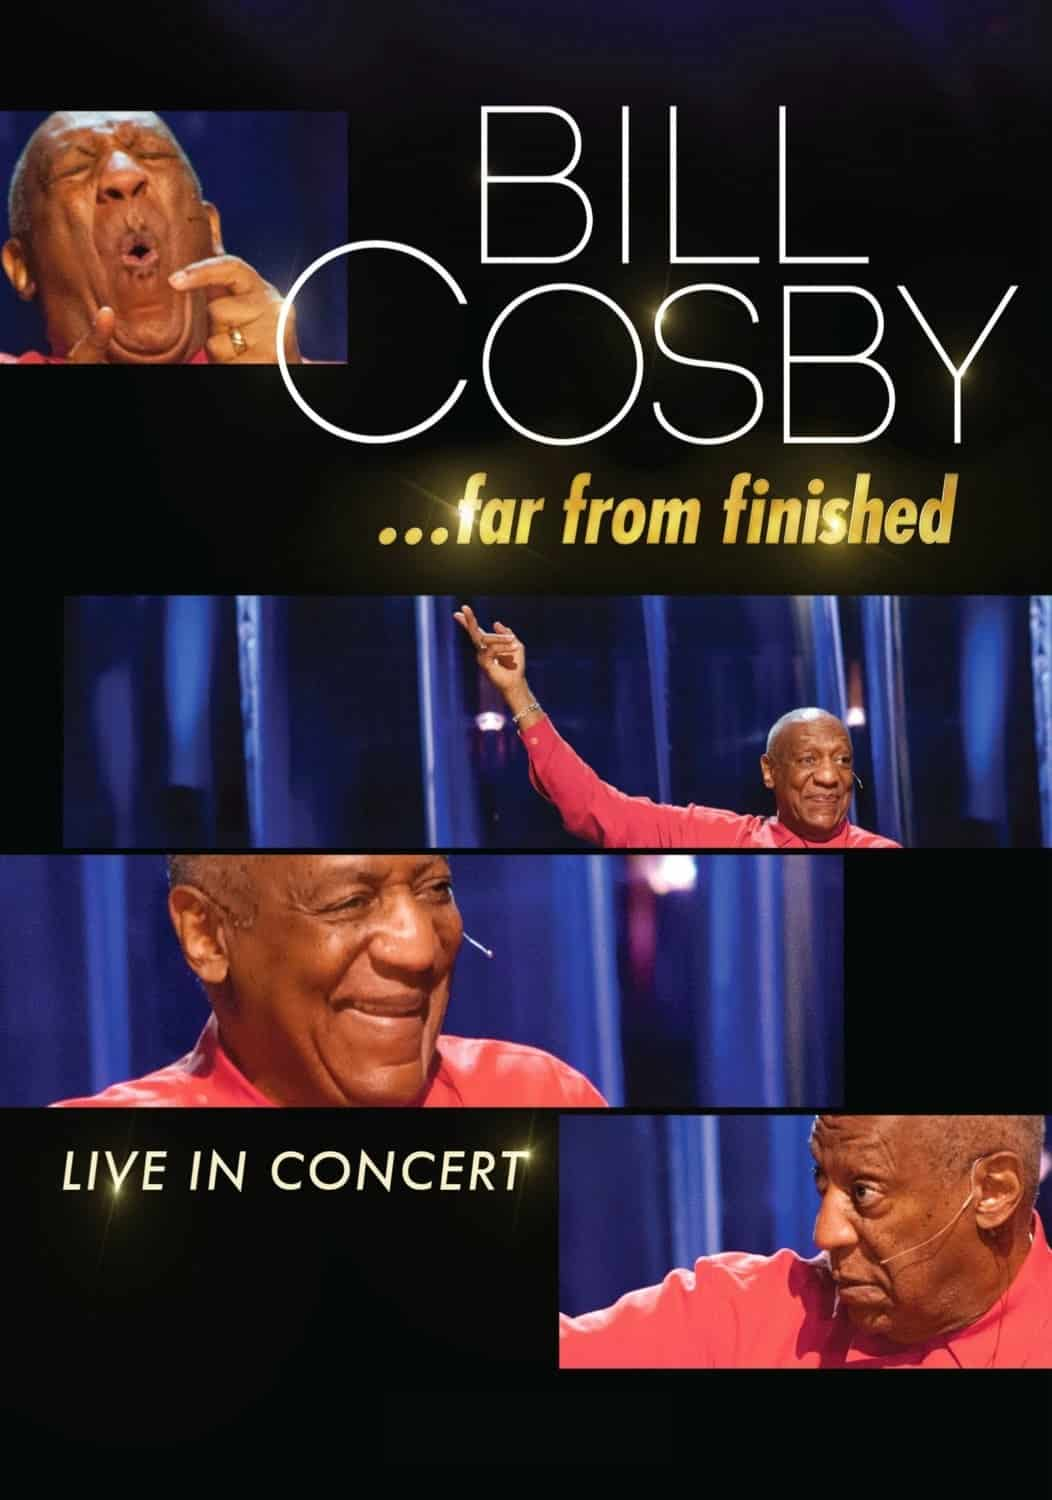 Bill cosby far from finished